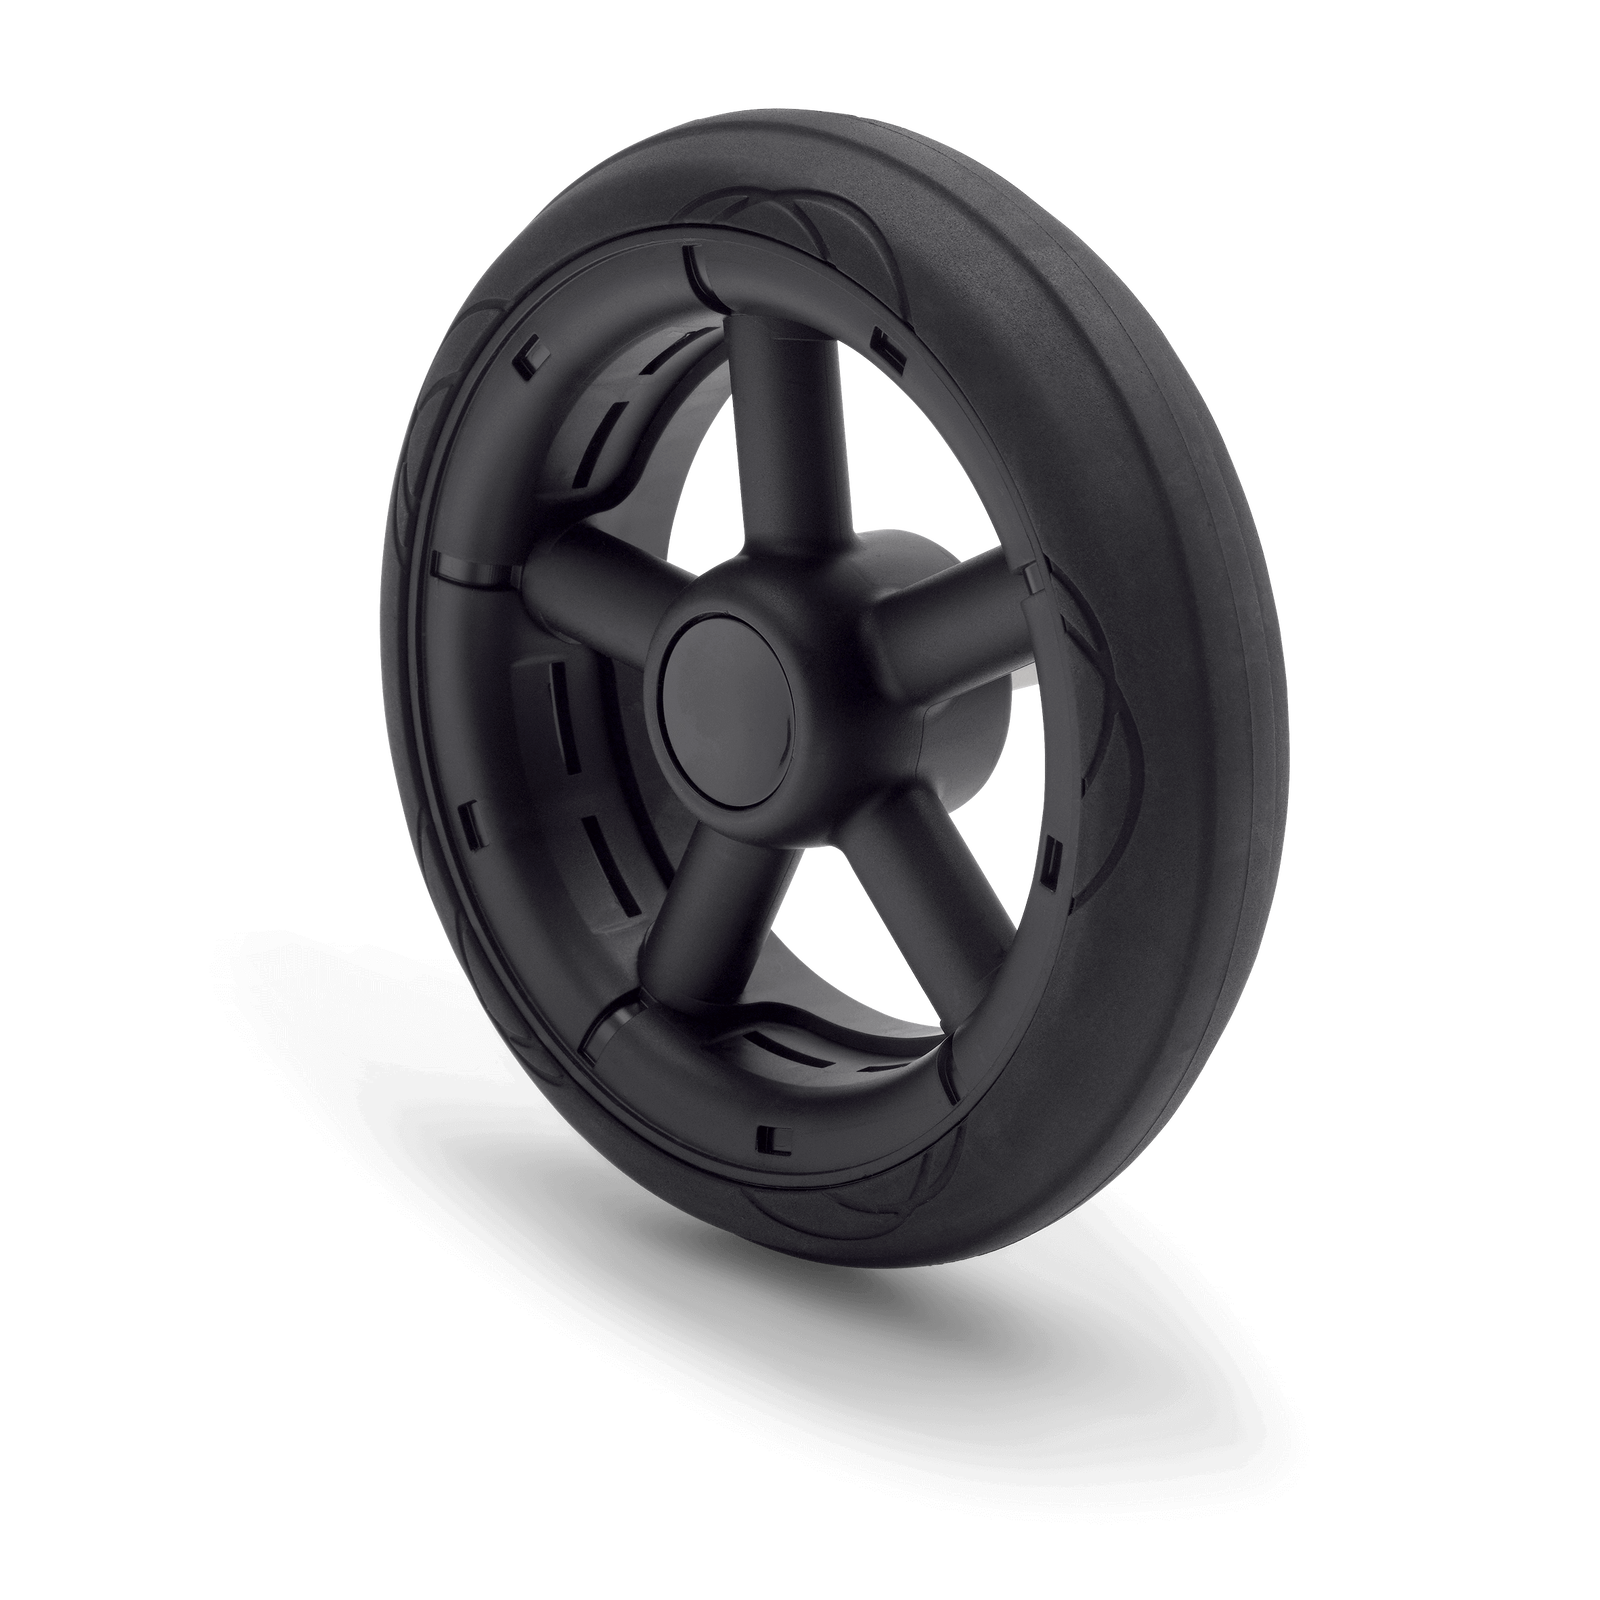 Bugaboo Ant rear wheels